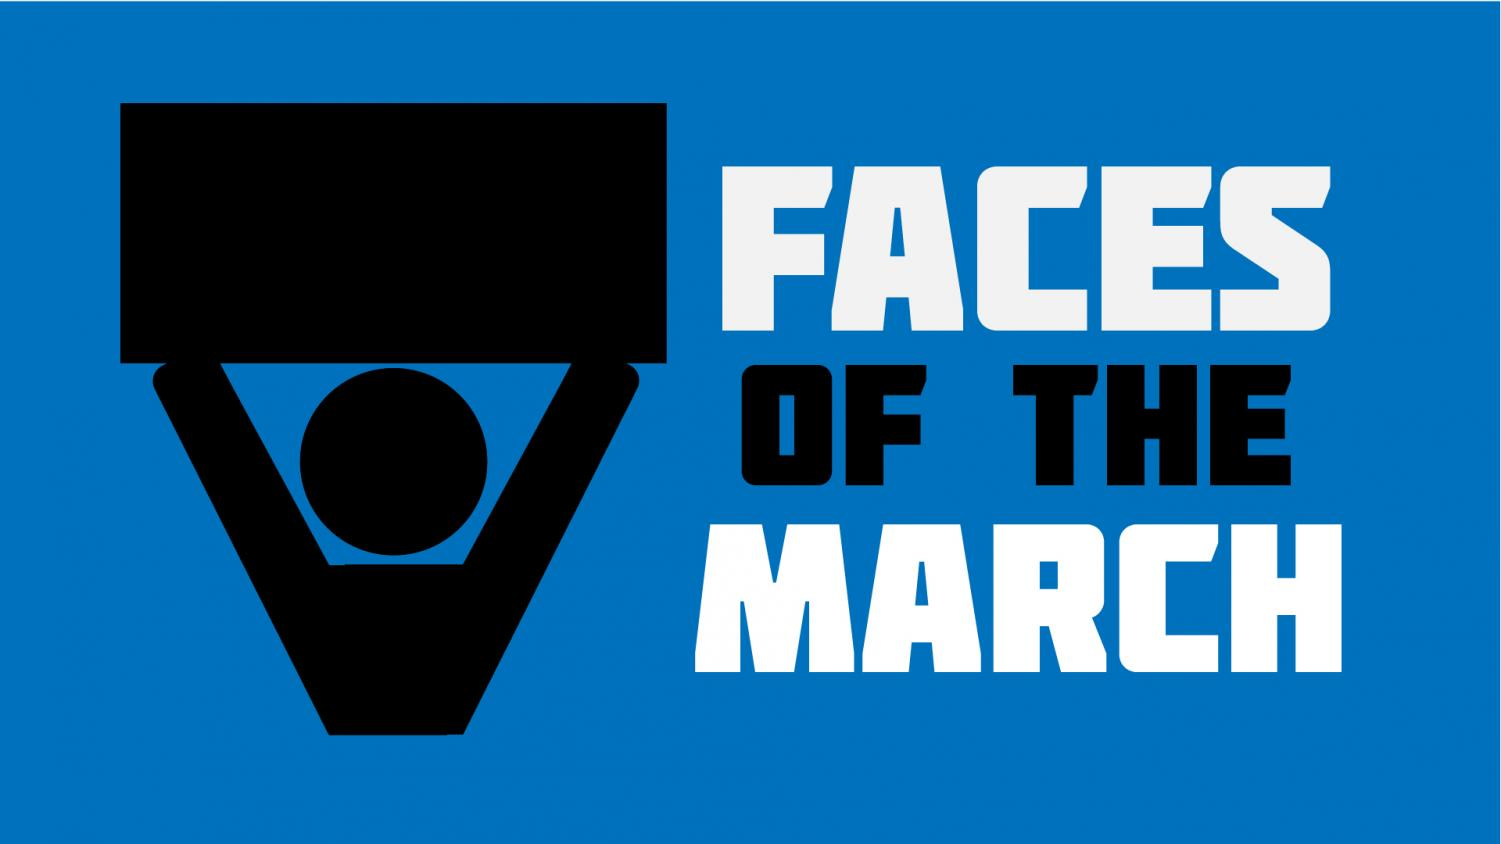 Faces of the March: Crossing party lines, Alaskan activist and rallying as a family